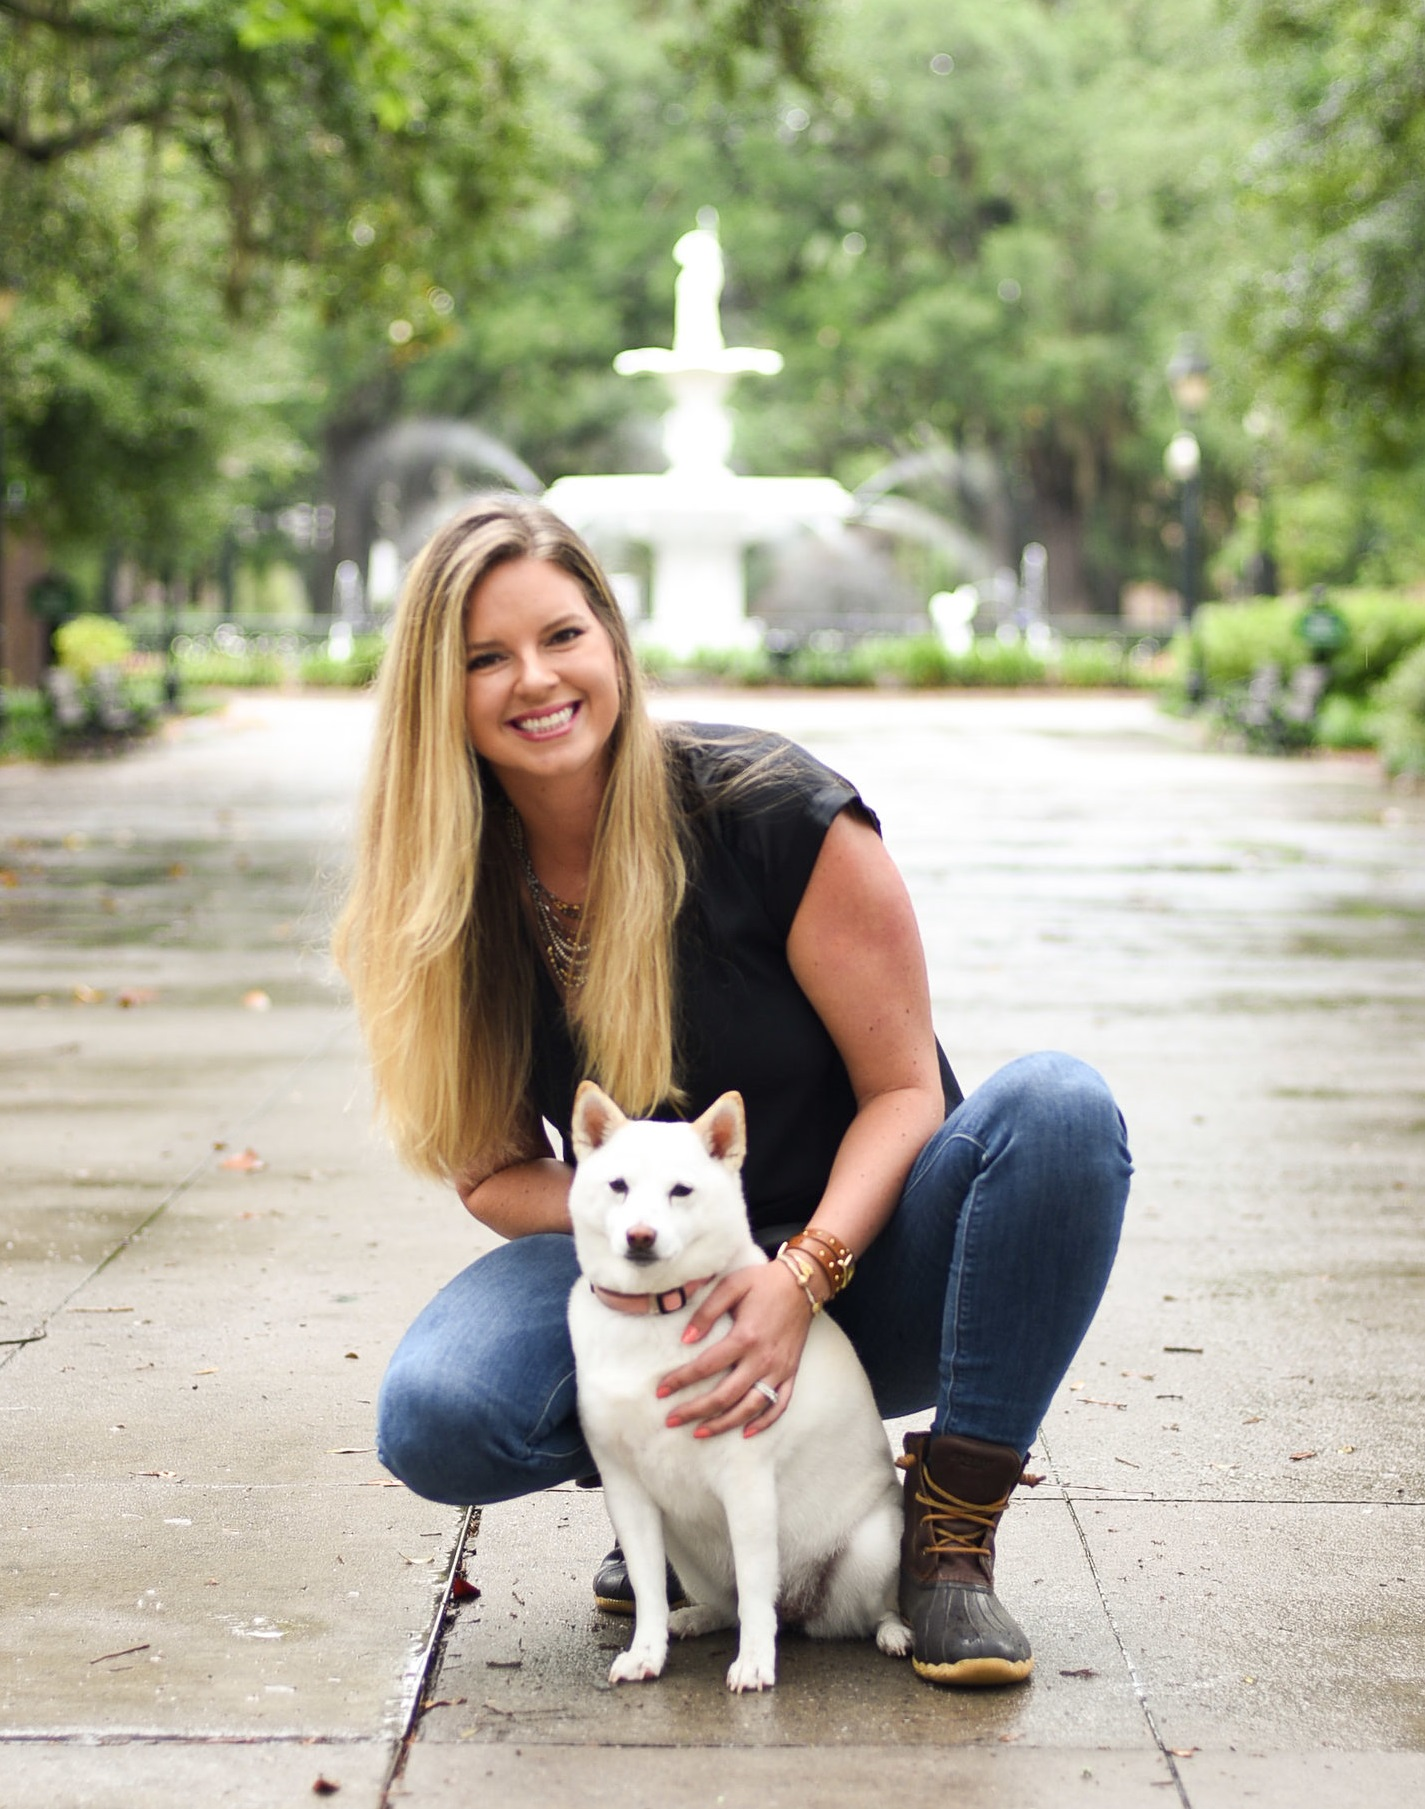 Hi there! I'm Pamela Knowles. - With a passion for all things marketing, I love serving local small businesses who are hustling hard to create the business of their dreams.I'm a born and raised Floridian living in the outskirts of Savannah with my husband, Jedison, our young son, Parker, with our diva Shiba Inu, Holli. I'm known for reciting lines from Friends and watching Law & Order SVU marathons every weekend.Want to get to know me more? Here are five facts about me!